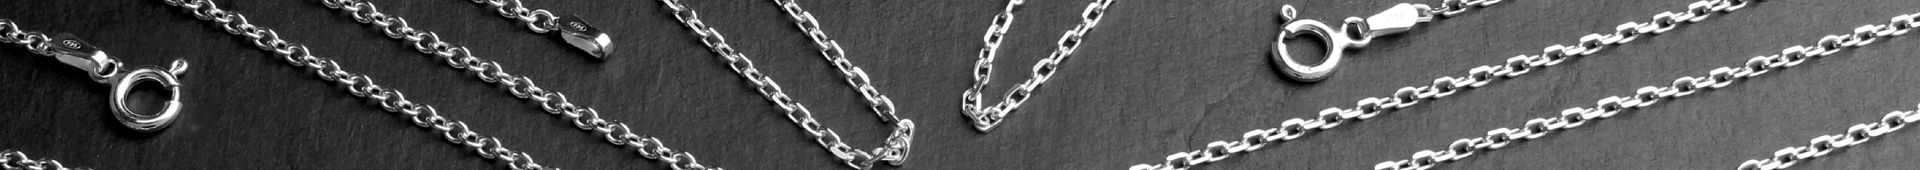 Men's Sterling Silver Trace Chain Necklaces